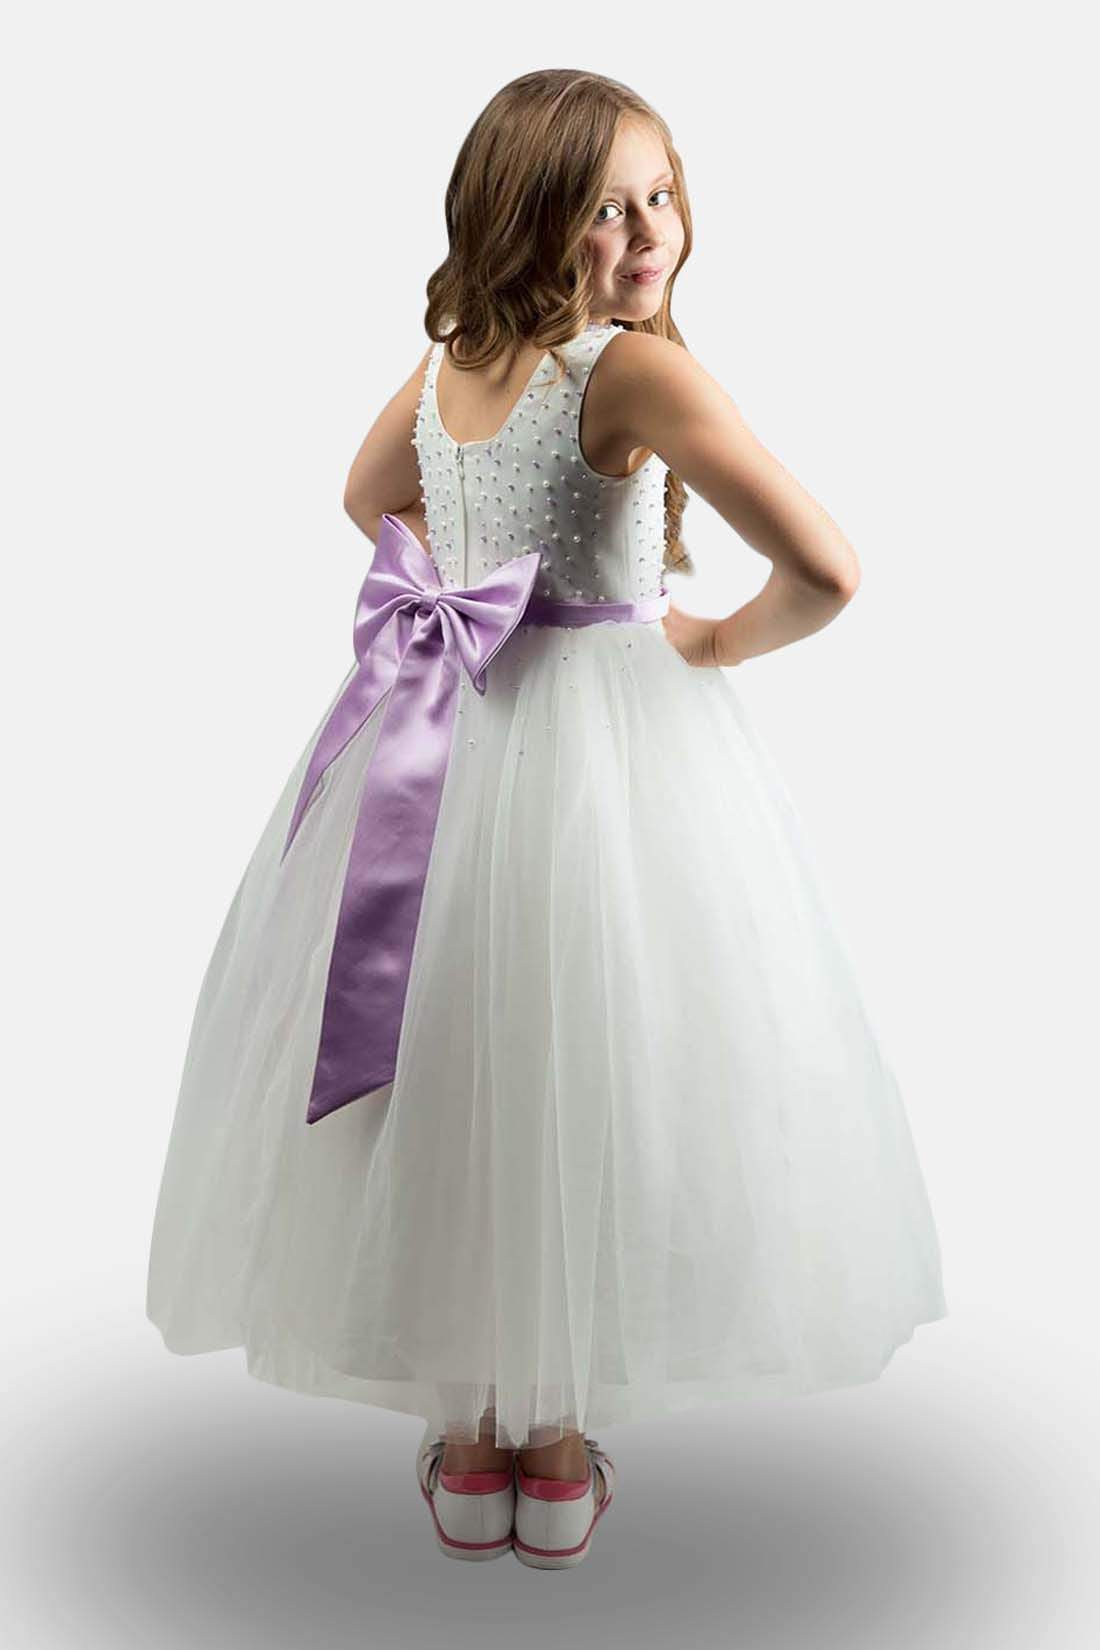 952f4f8a4fa White And Plum Flower Girl Dresses - Gomes Weine AG